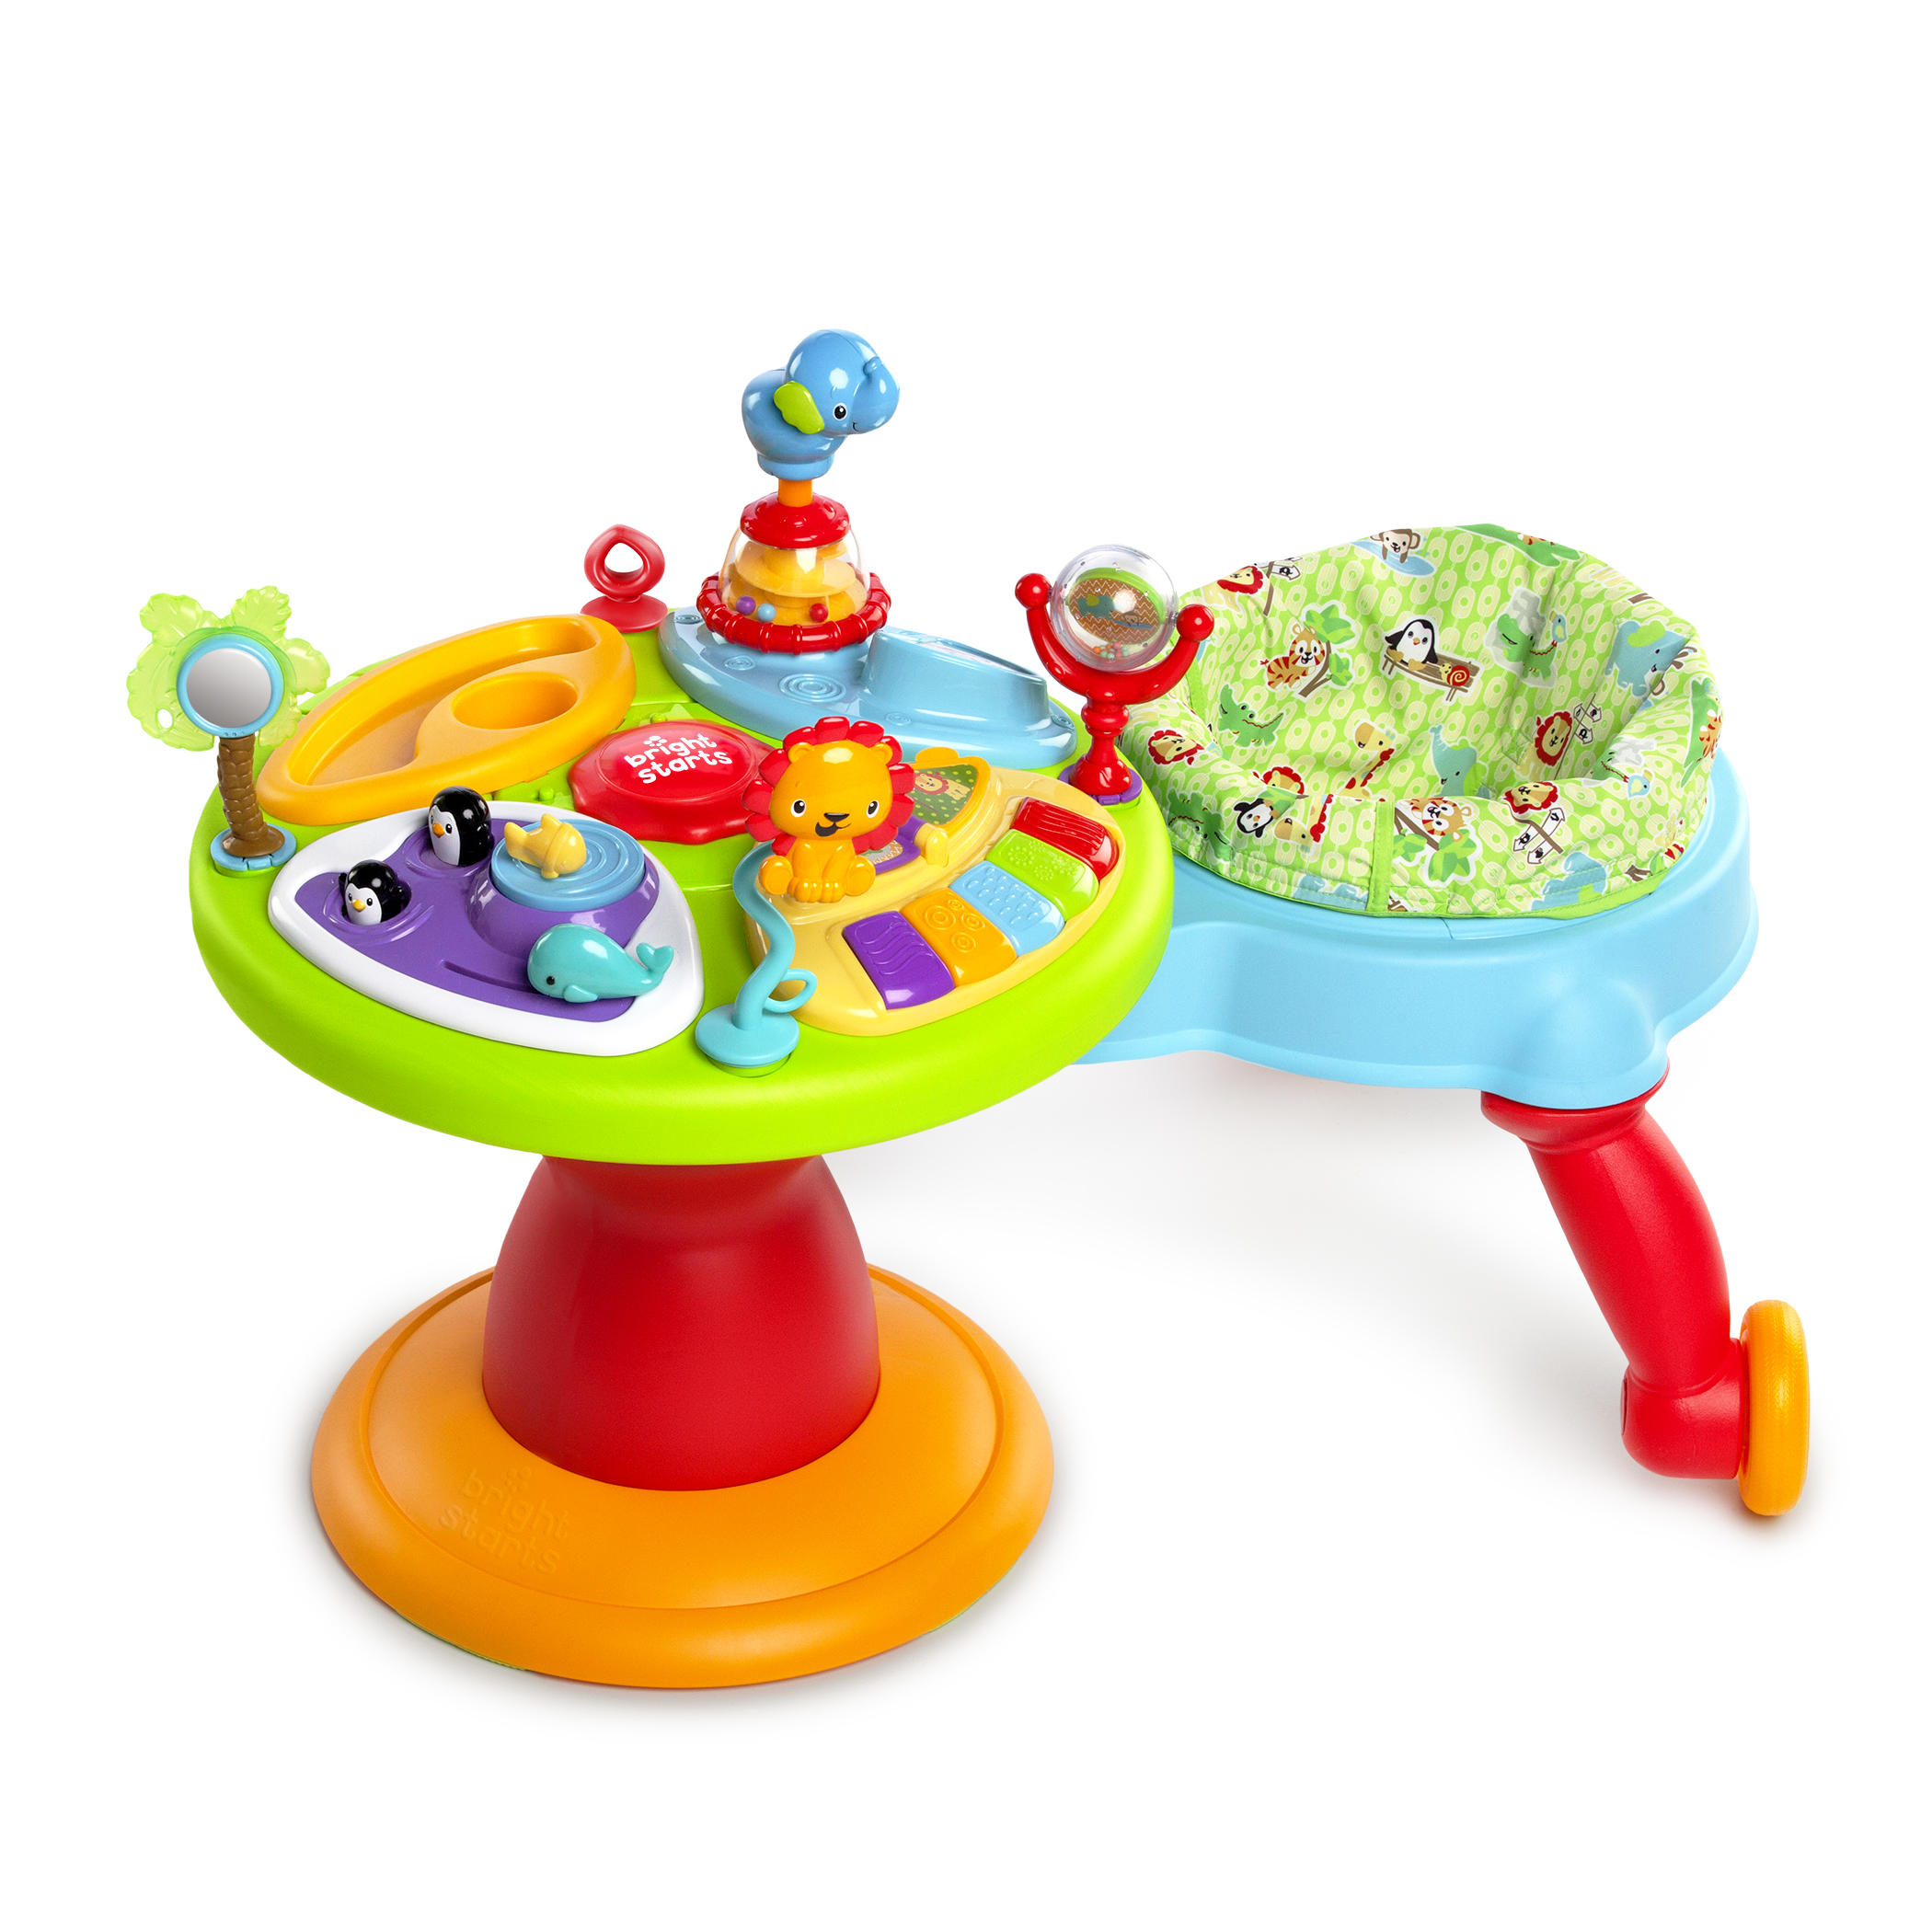 Bright Starts 3 In 1 Around We Go Activity Center